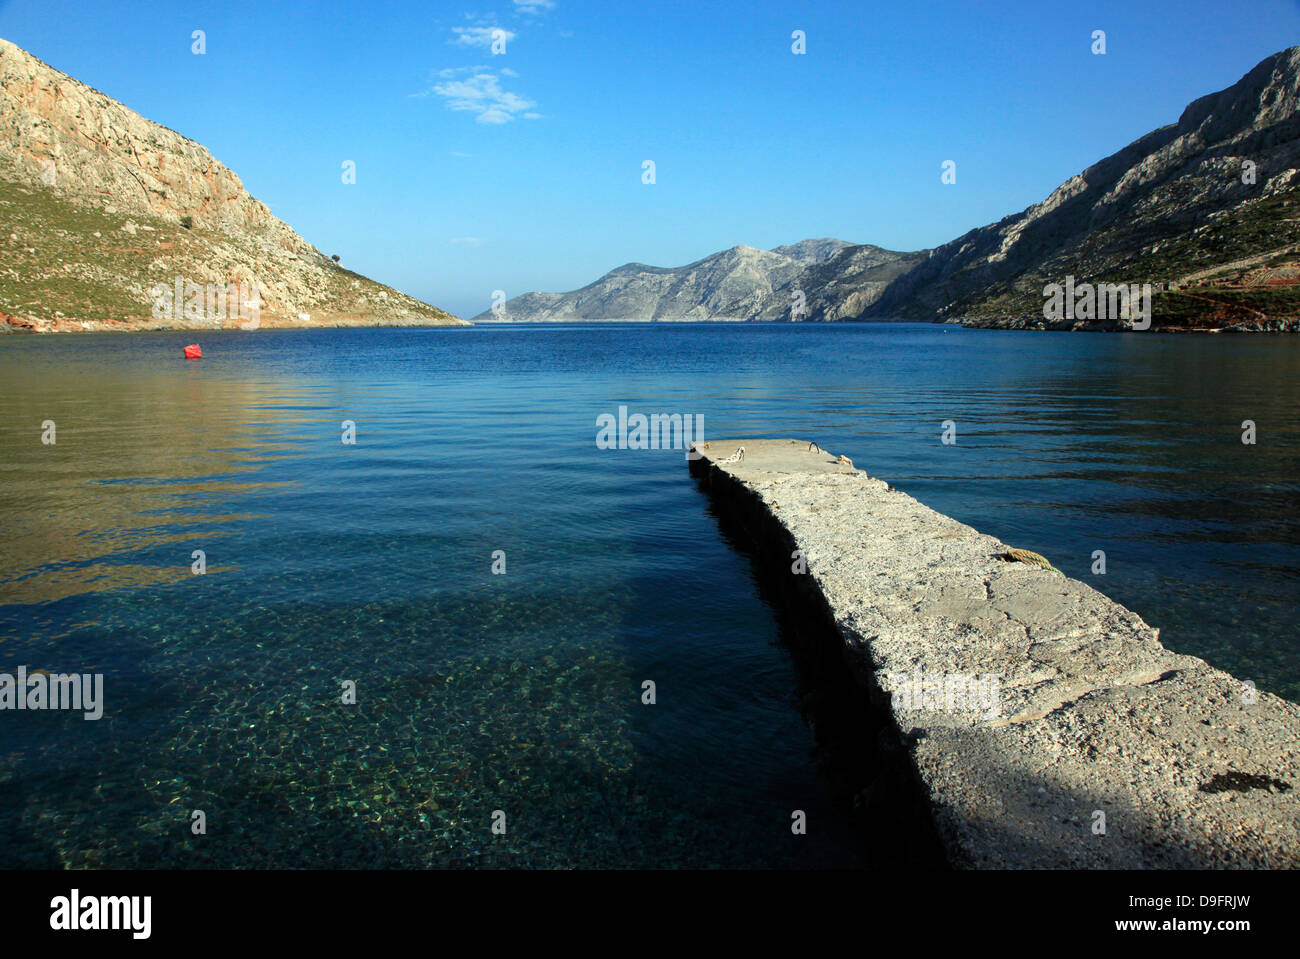 Jetty on the secluded and remote north coast of Kalymnos island, Dodecanese, Greek Islands, Greece - Stock Image